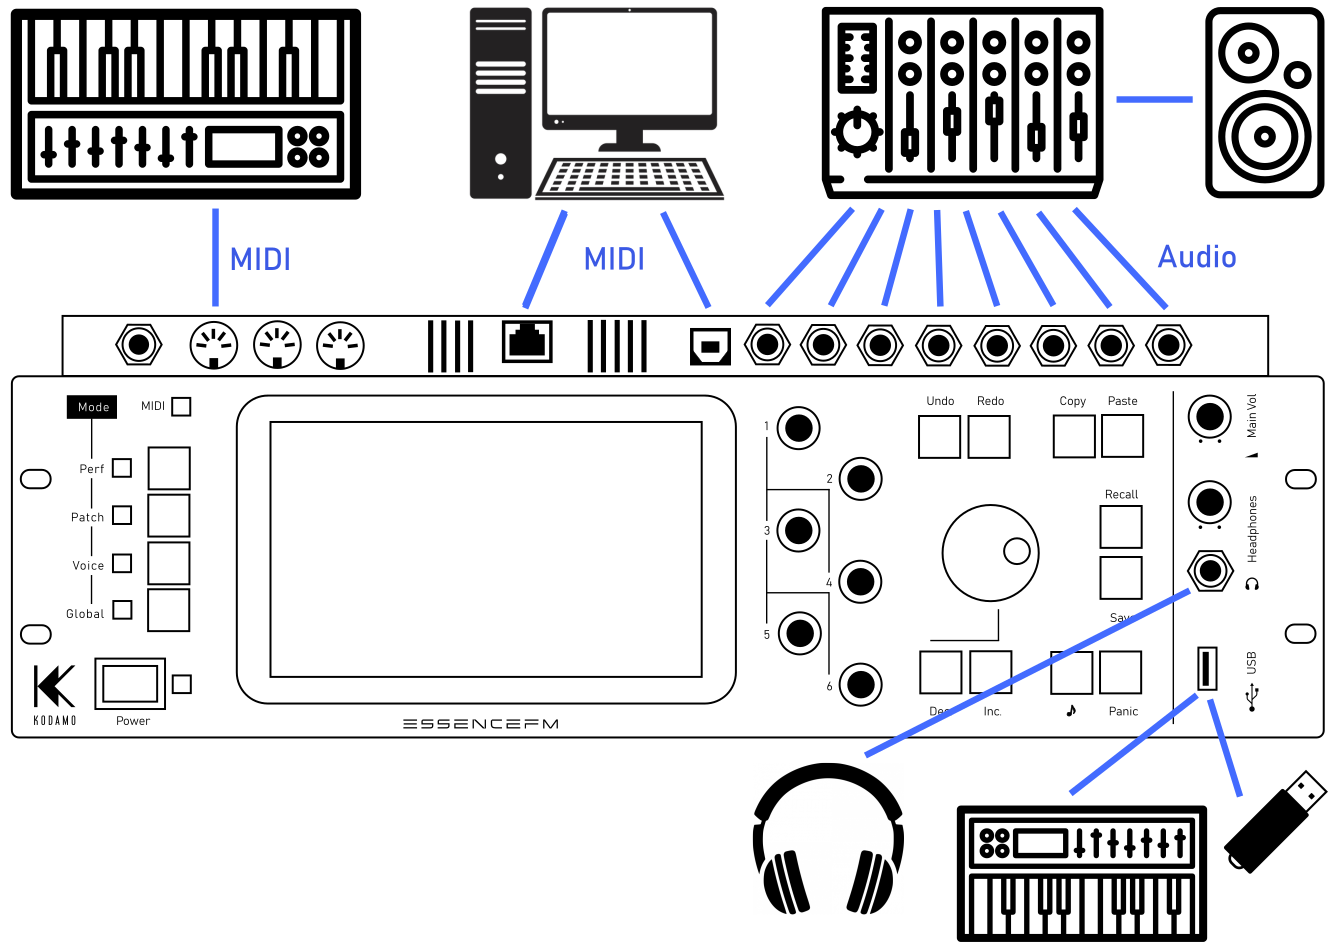 Schematic showing how the EssenceFM can be integrated in a studio